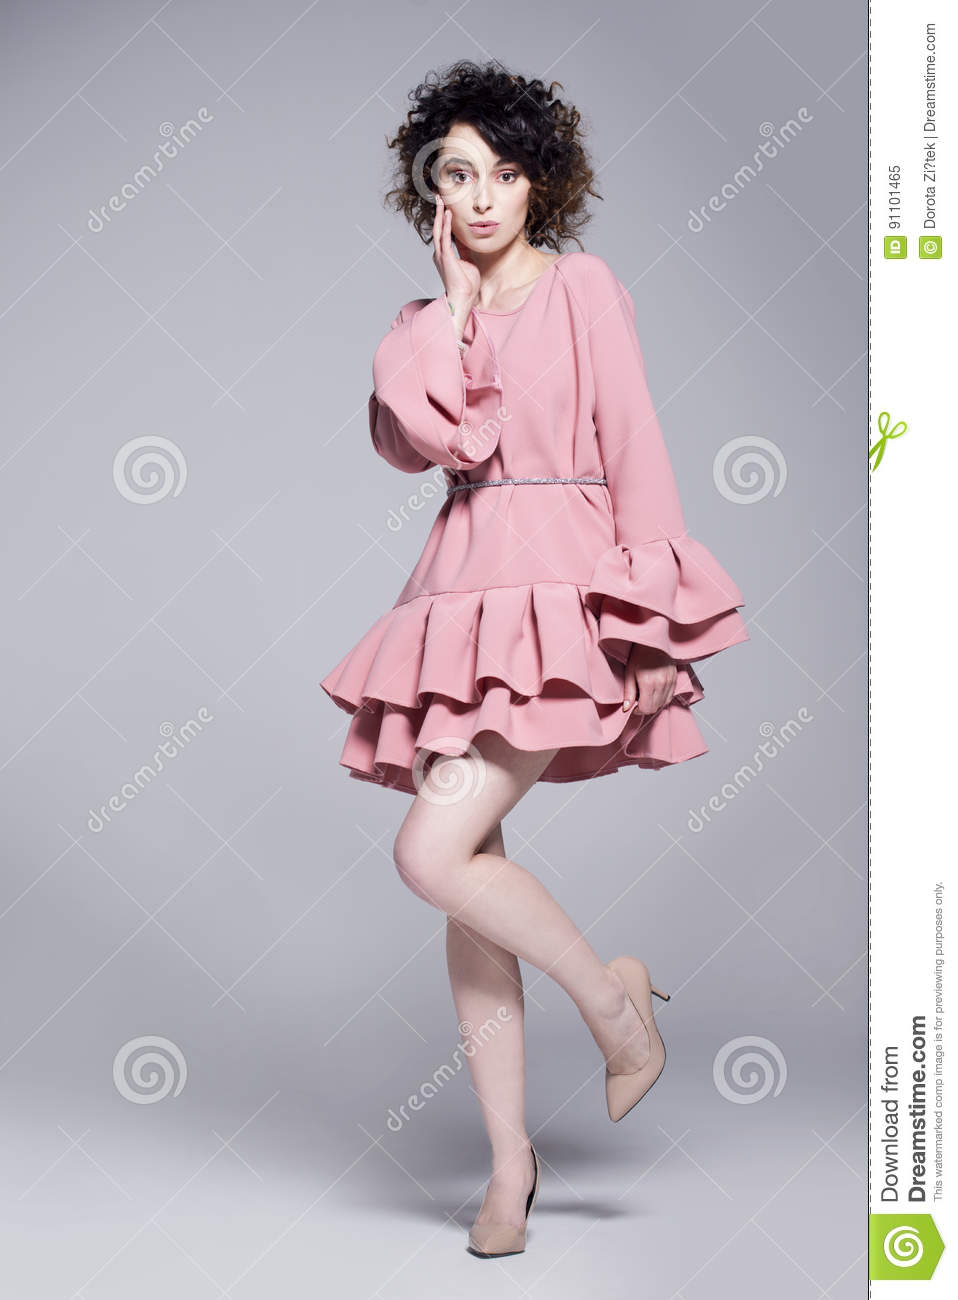 Beautiful young woman in a pink dress with frills